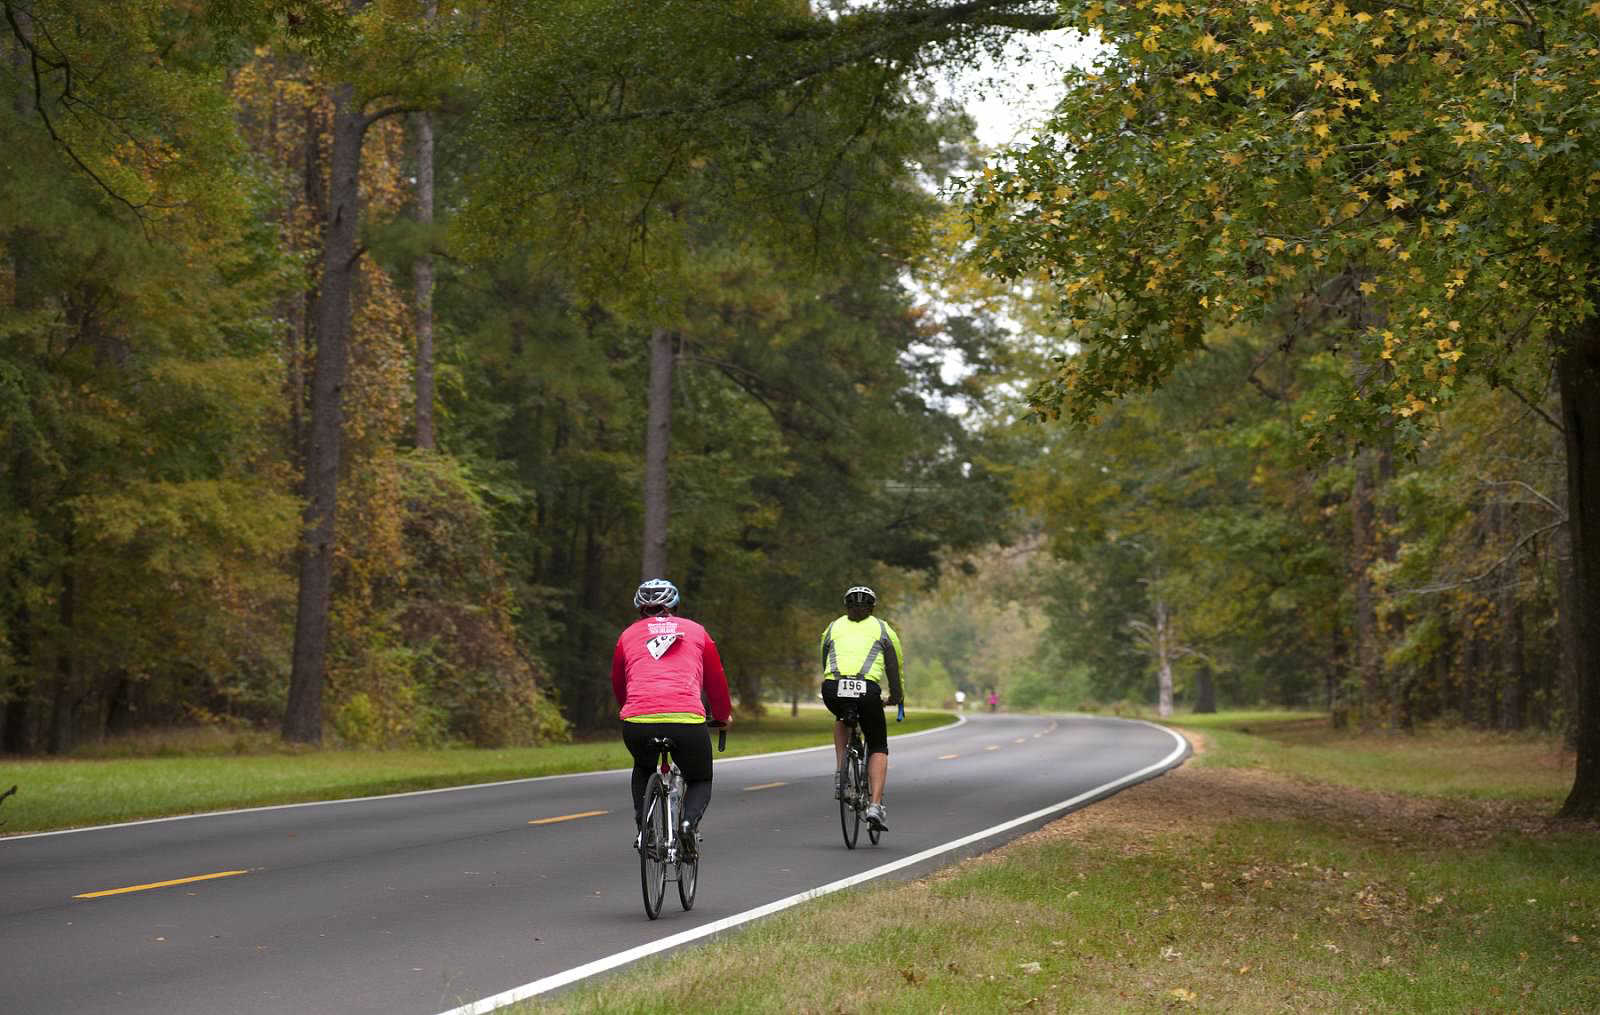 Cyclists on the Natchez Trace Parkway